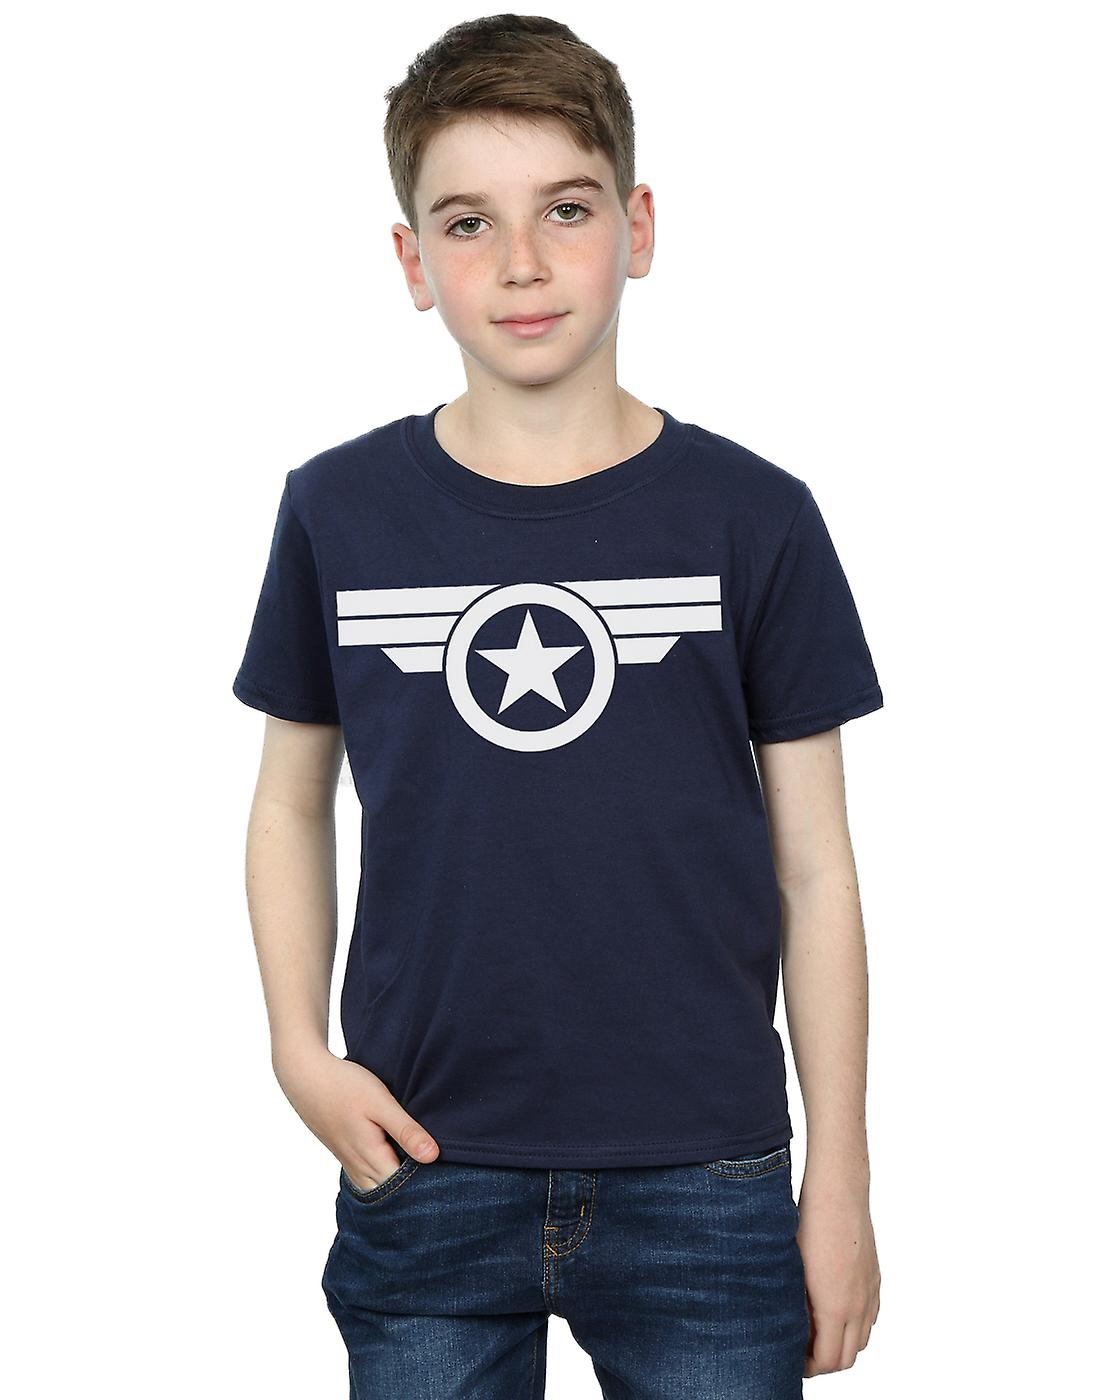 Marvel Boys Captain America Super Soldier T-Shirt